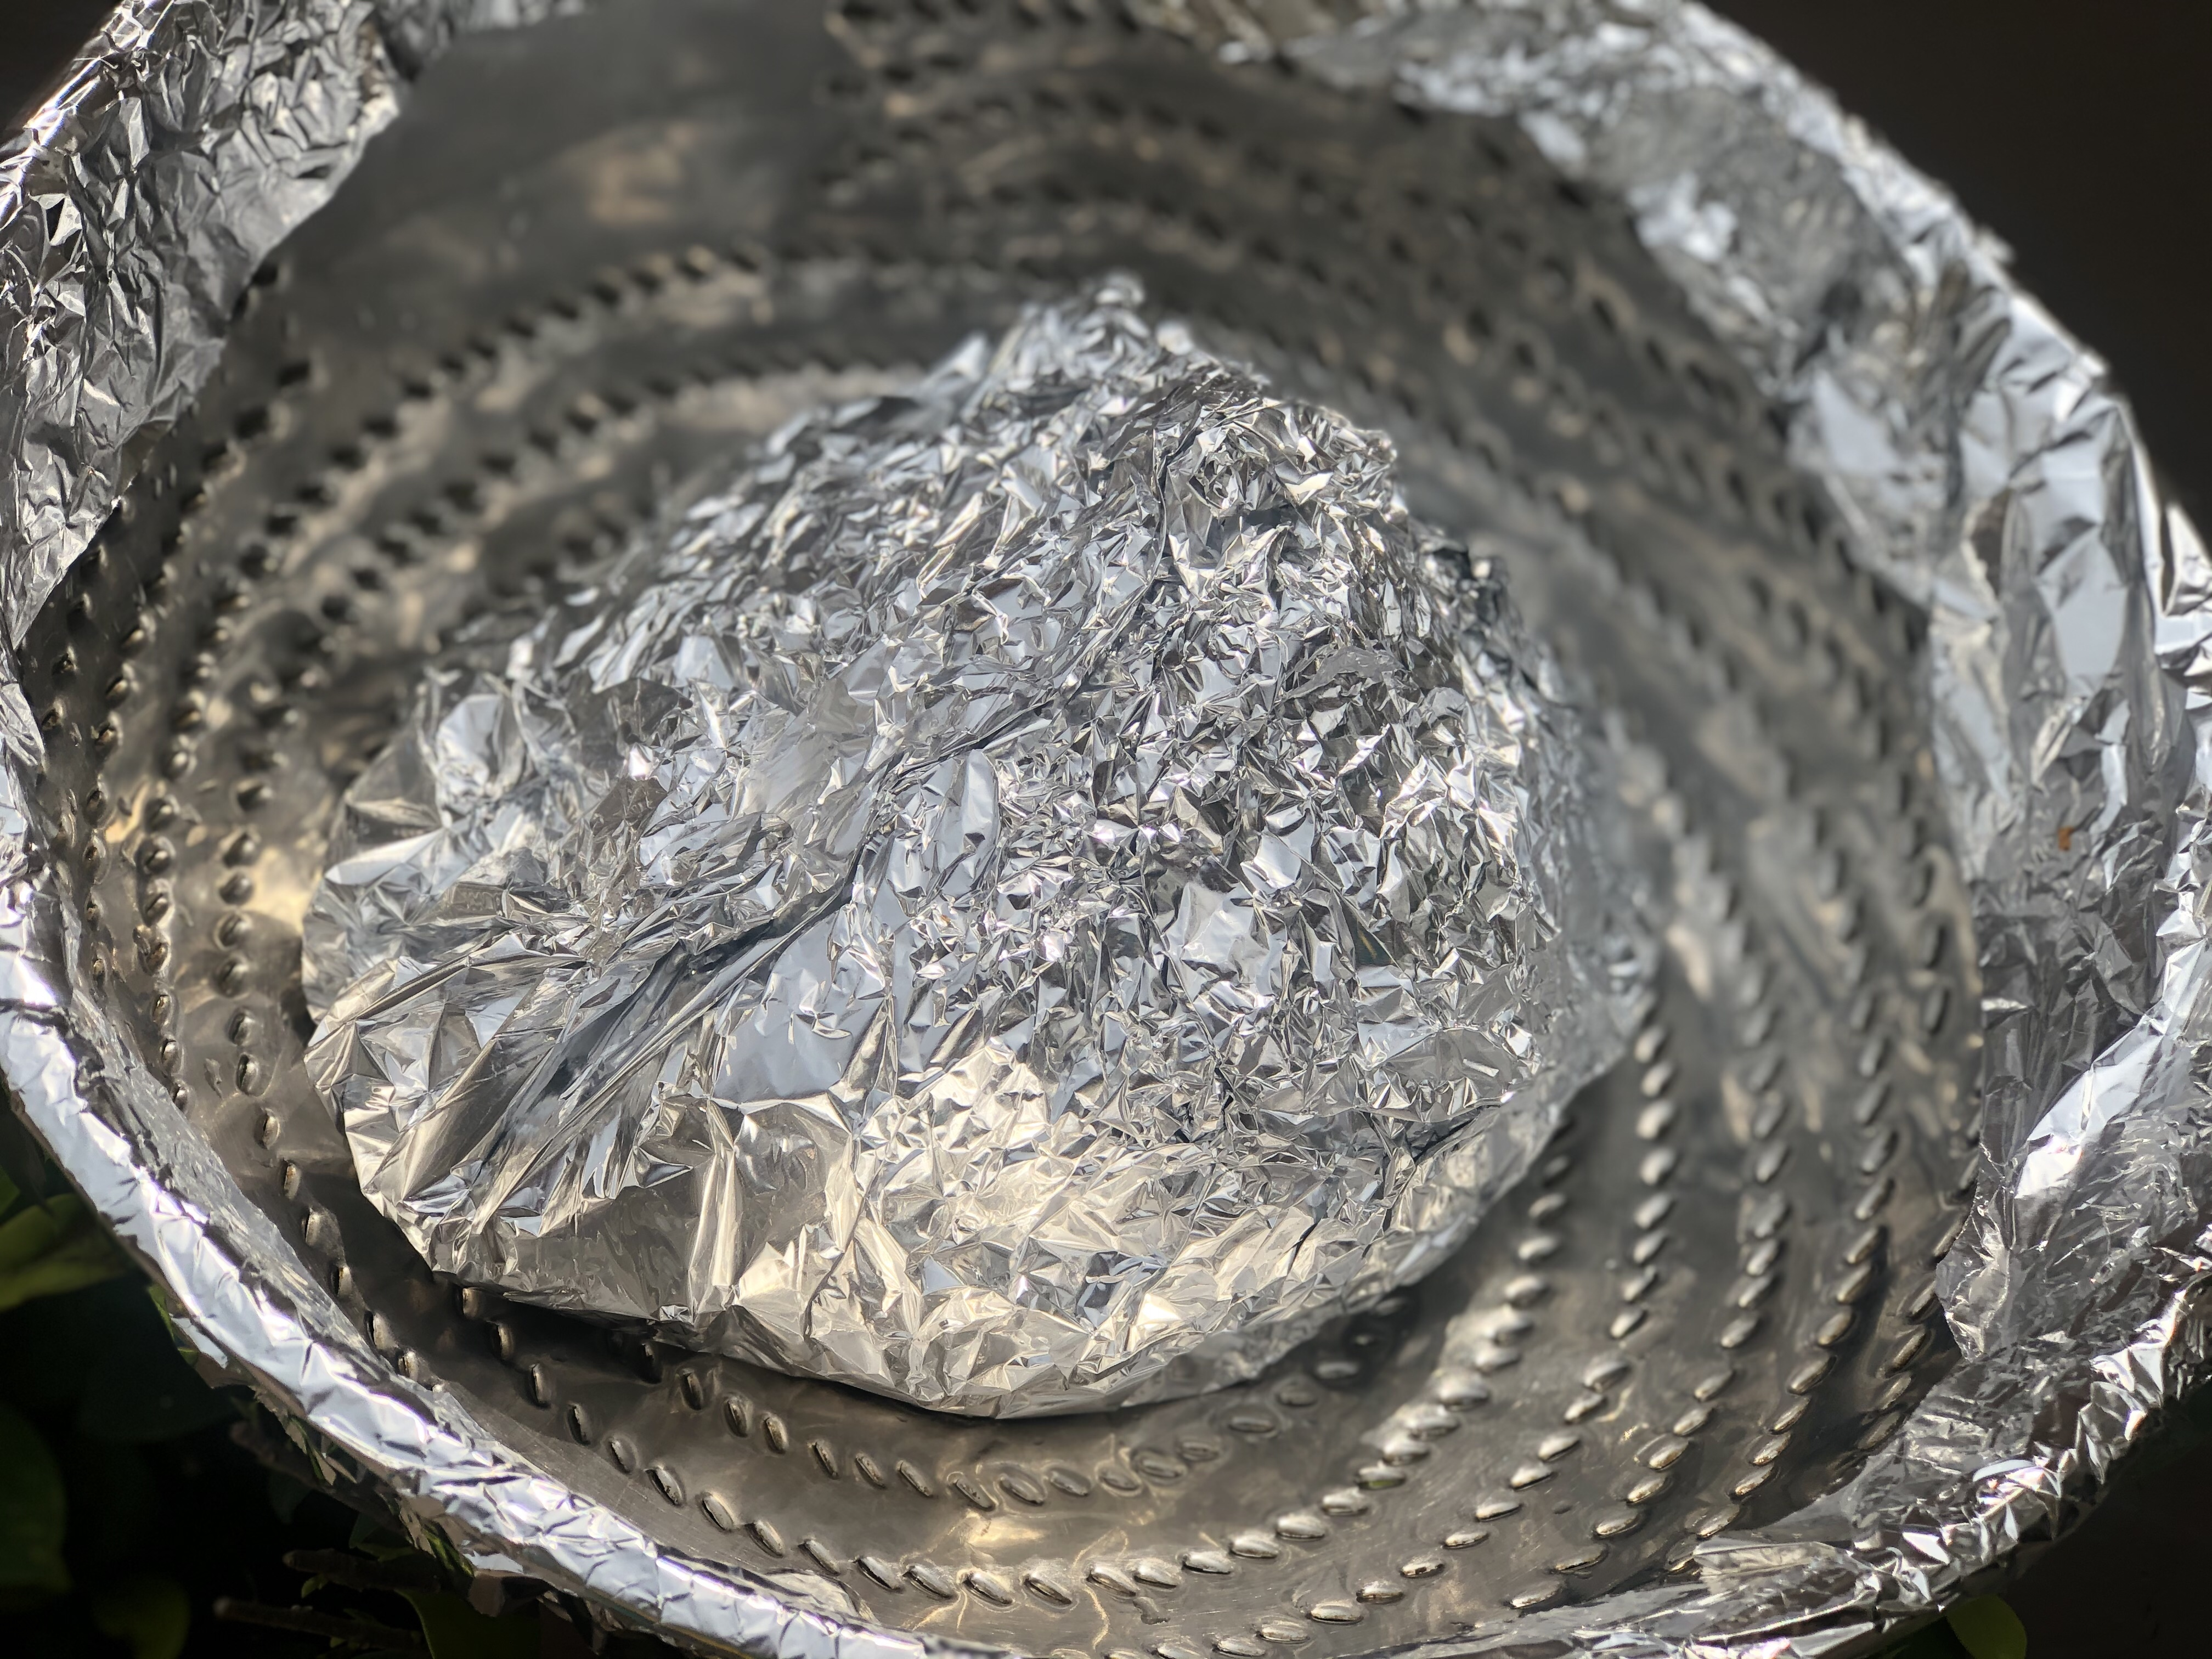 Foil wrapped marinated chicken in a steamer